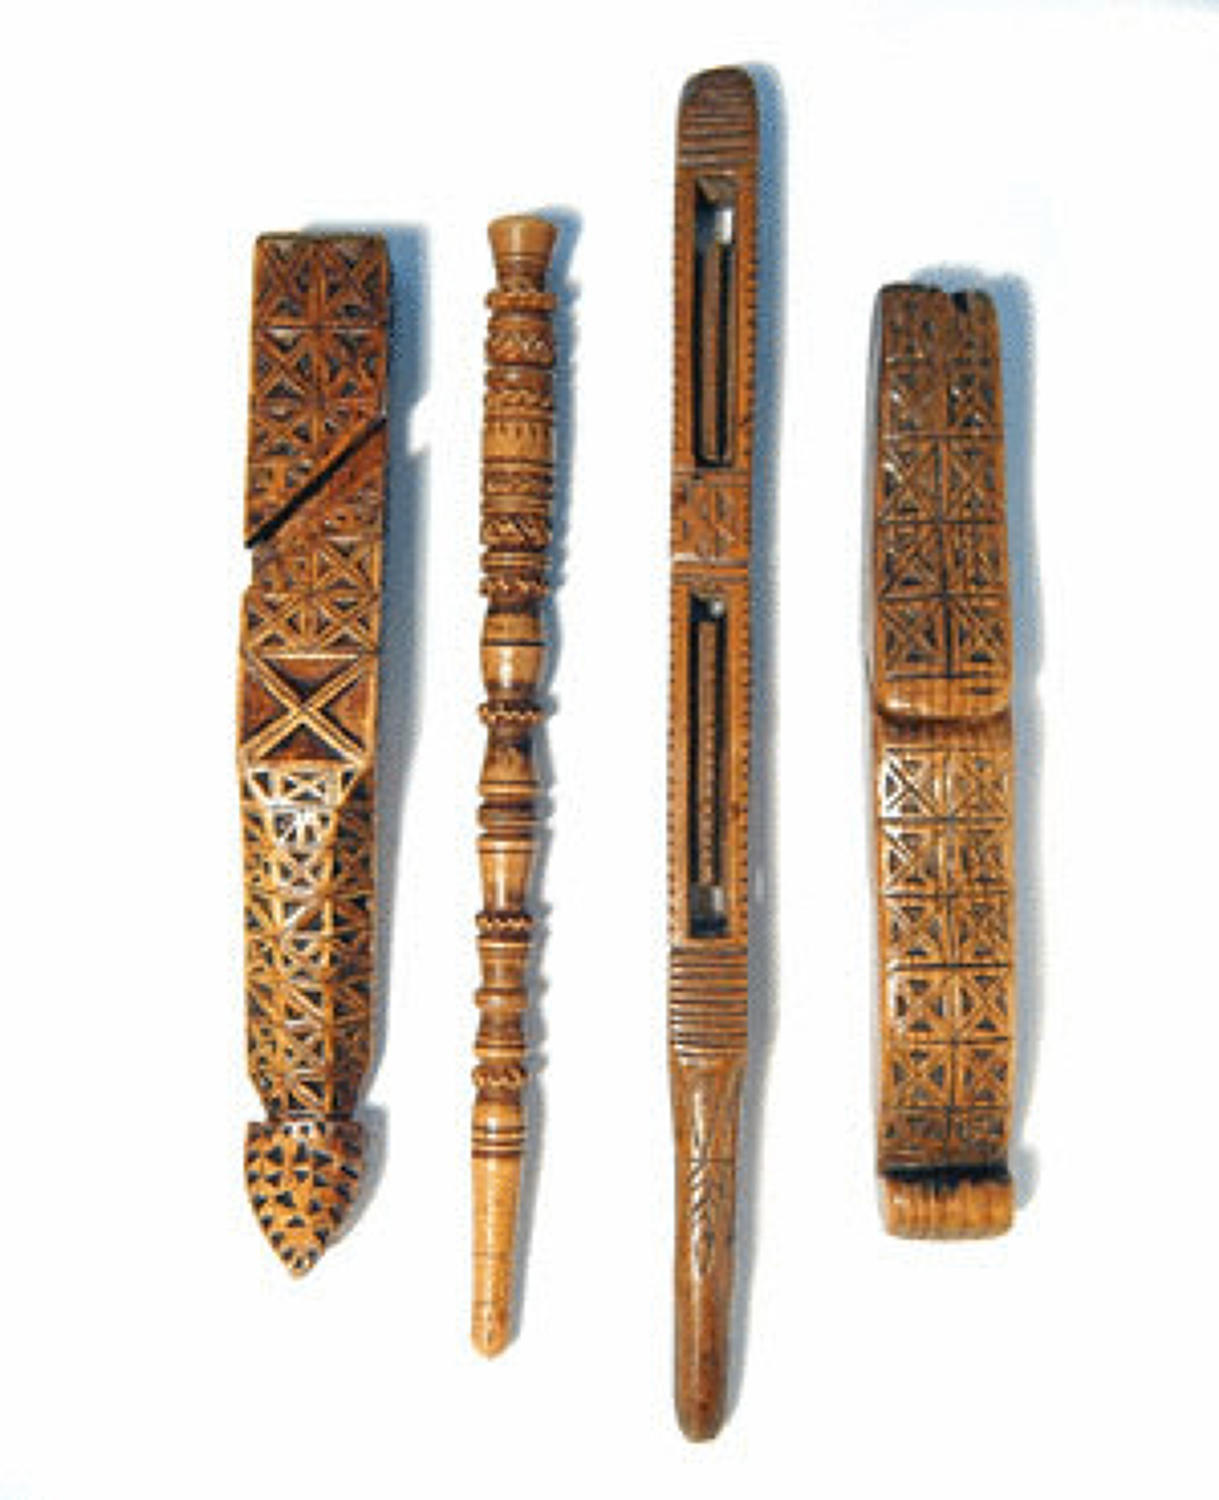 Four 18/19thc Knitting Sheaths European C1780 - C1840